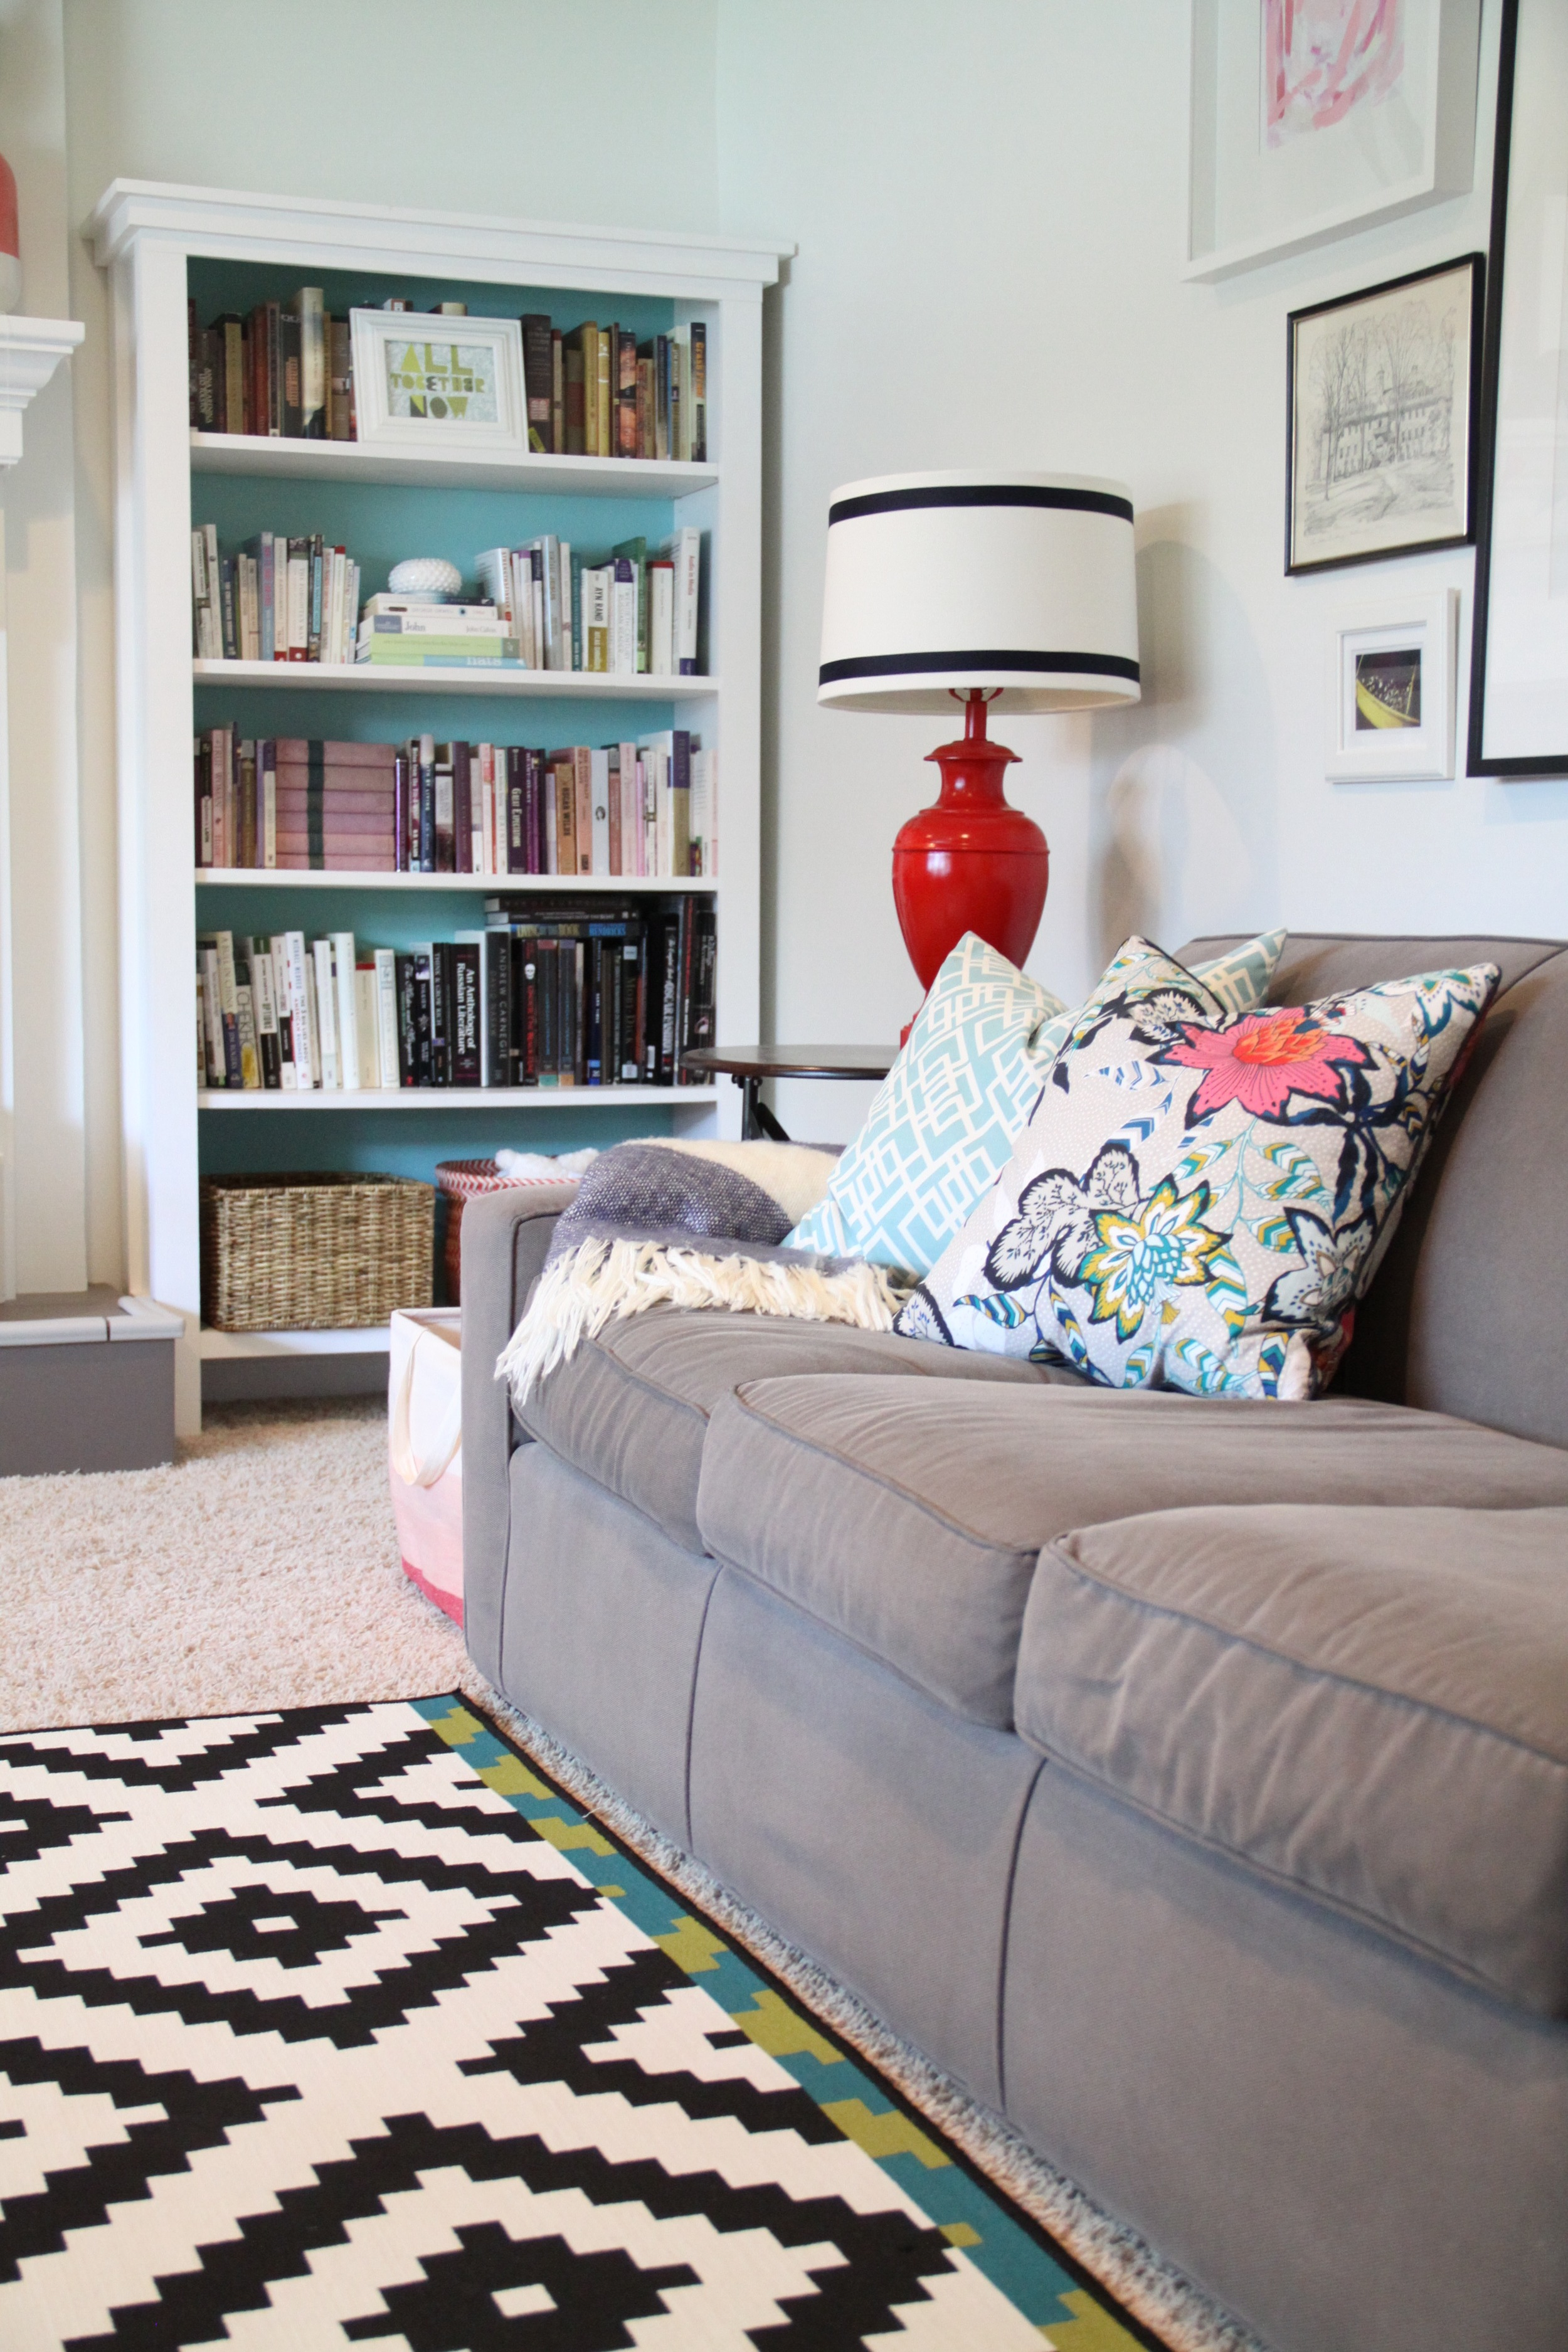 Living Room DIY Bookshelves with Gallery Wall